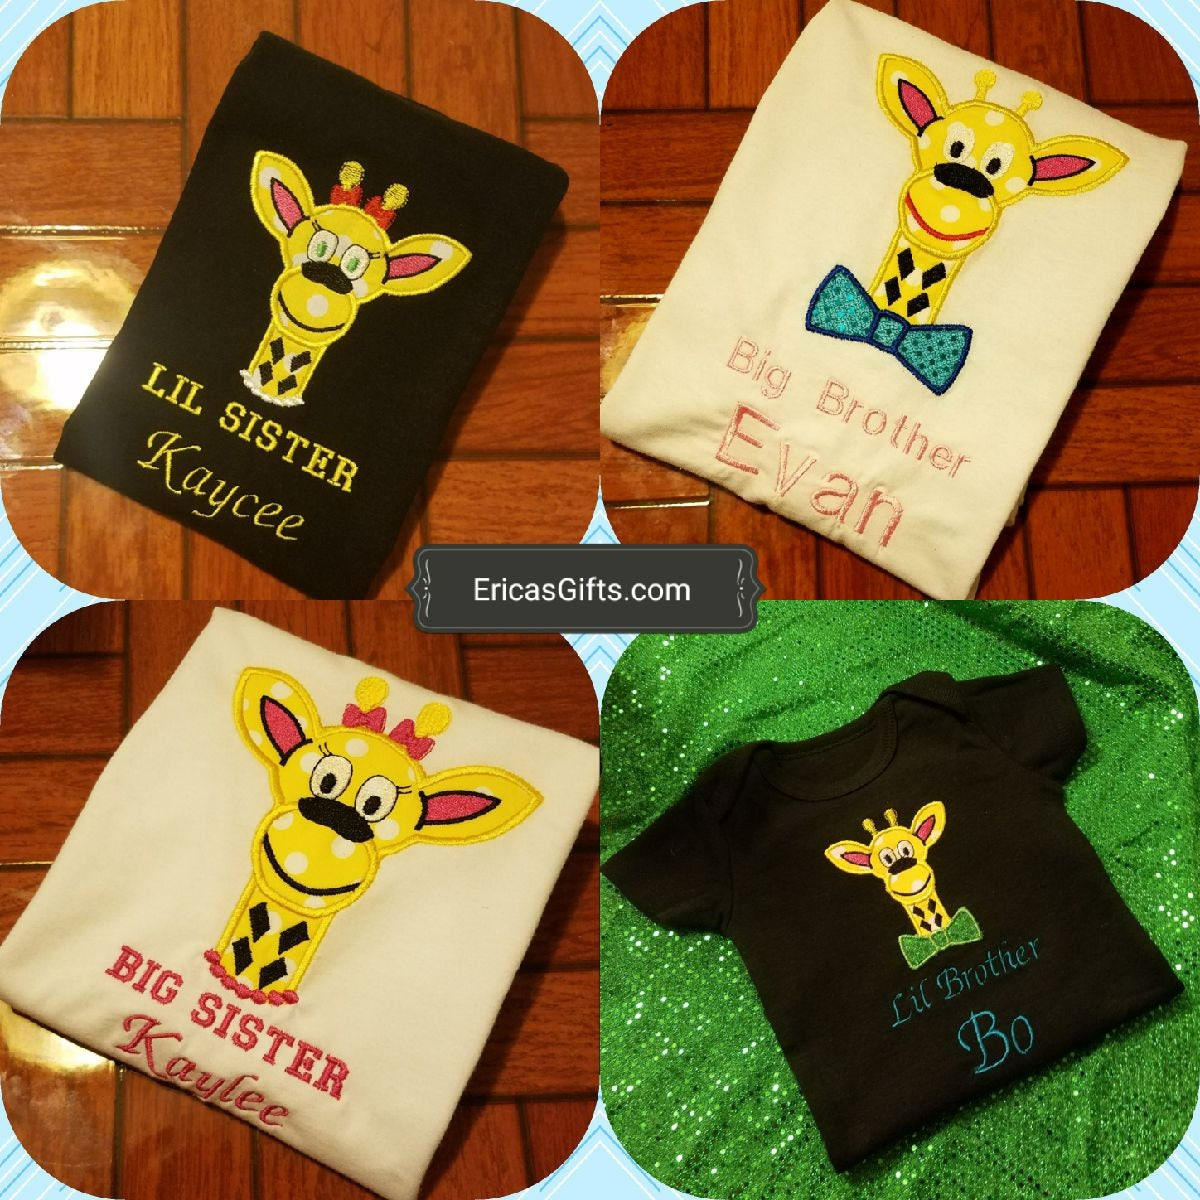 Boy Girl Baby Giraffe personalized embroidered shirts or onesies brother sister siblings custom embroidery Erica's Gifts